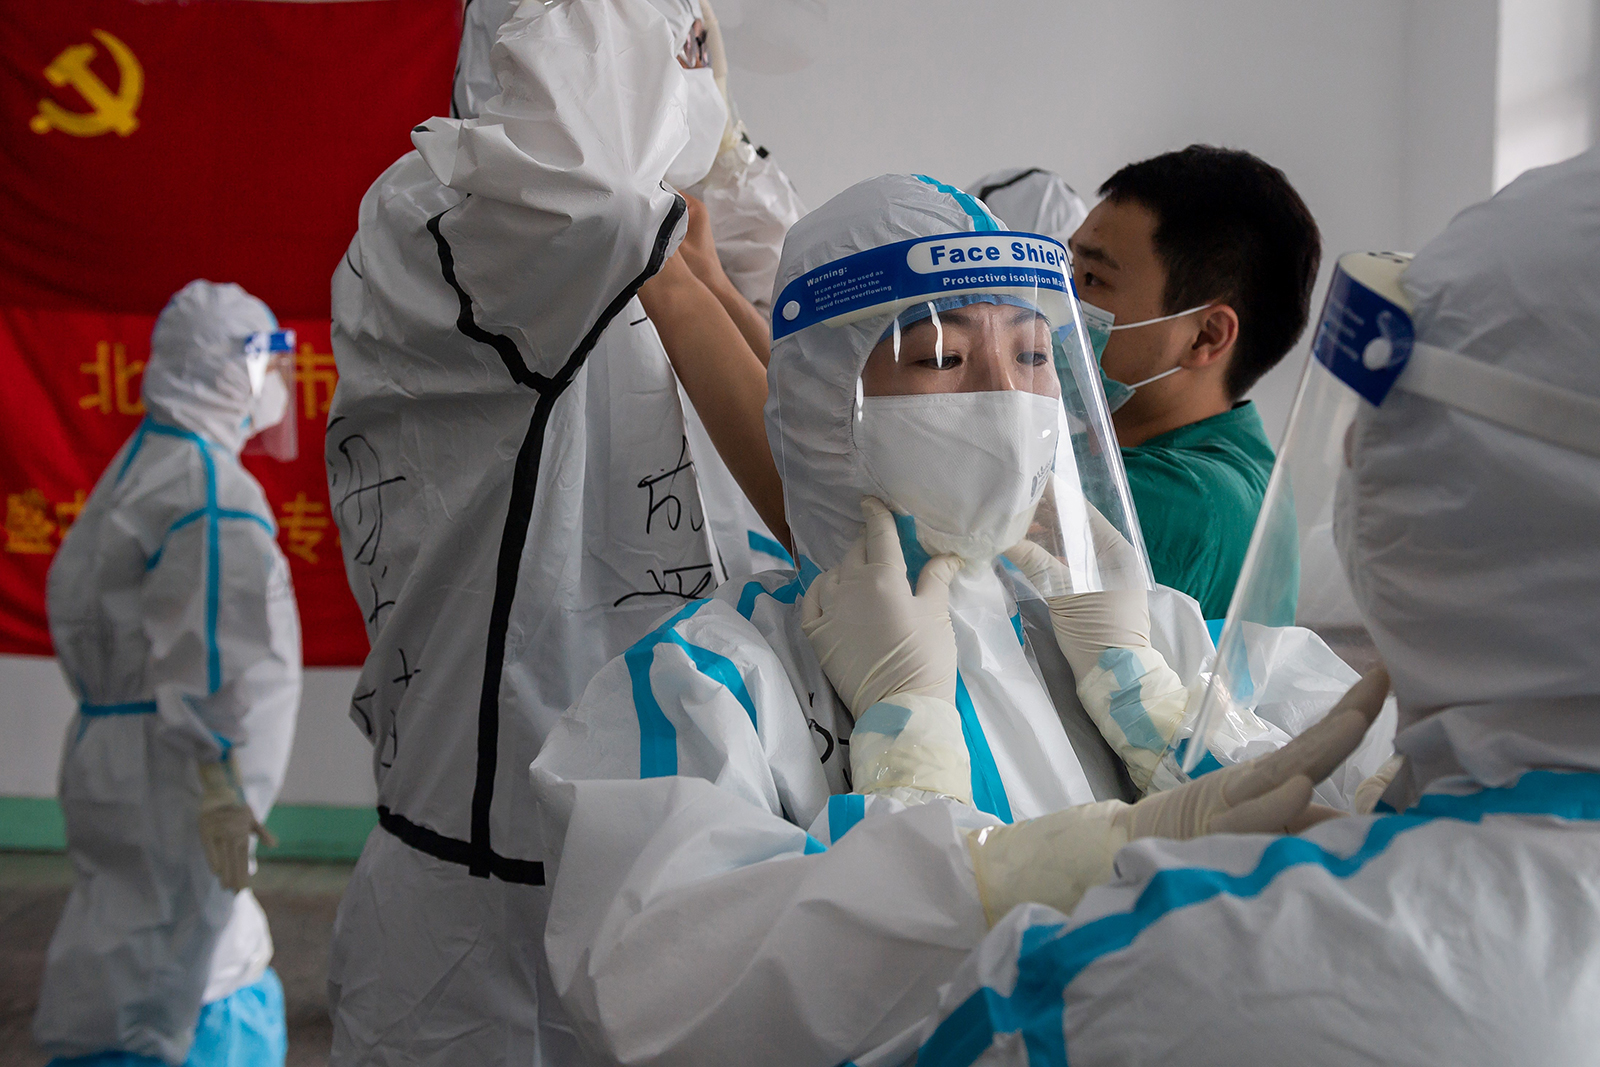 Medics prepare for their shift at the Jinrong Street testing site, in Beijing on June 24.